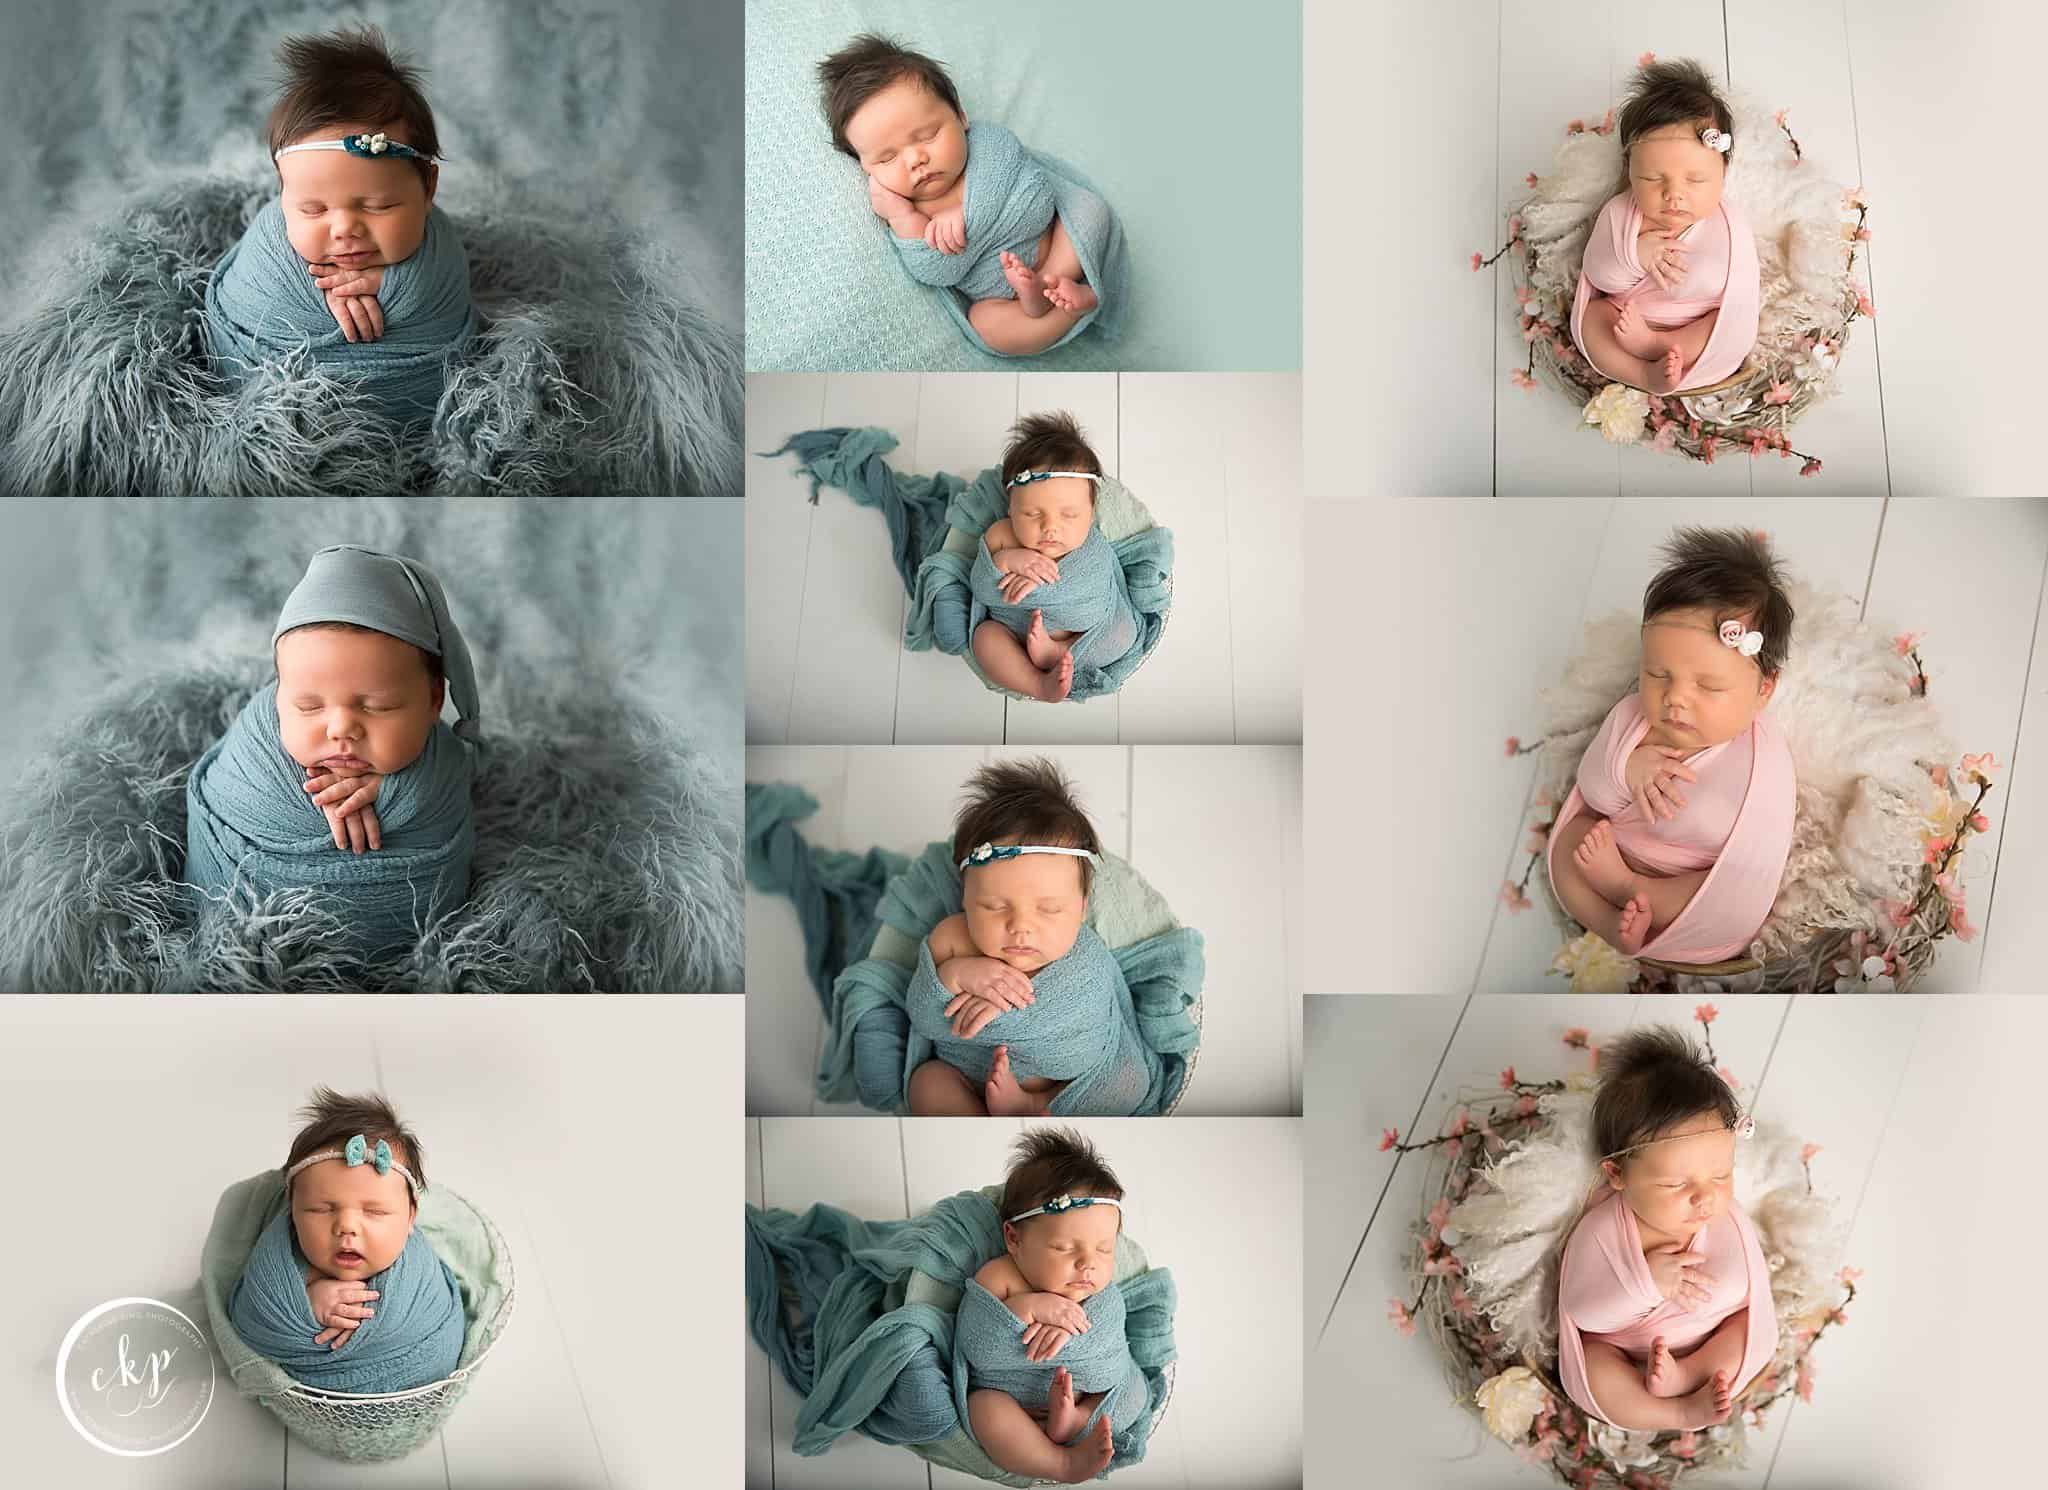 Did you know that catherine king photography offers petite newborn photography sessions these are shorter more affordable newborn photography sessions